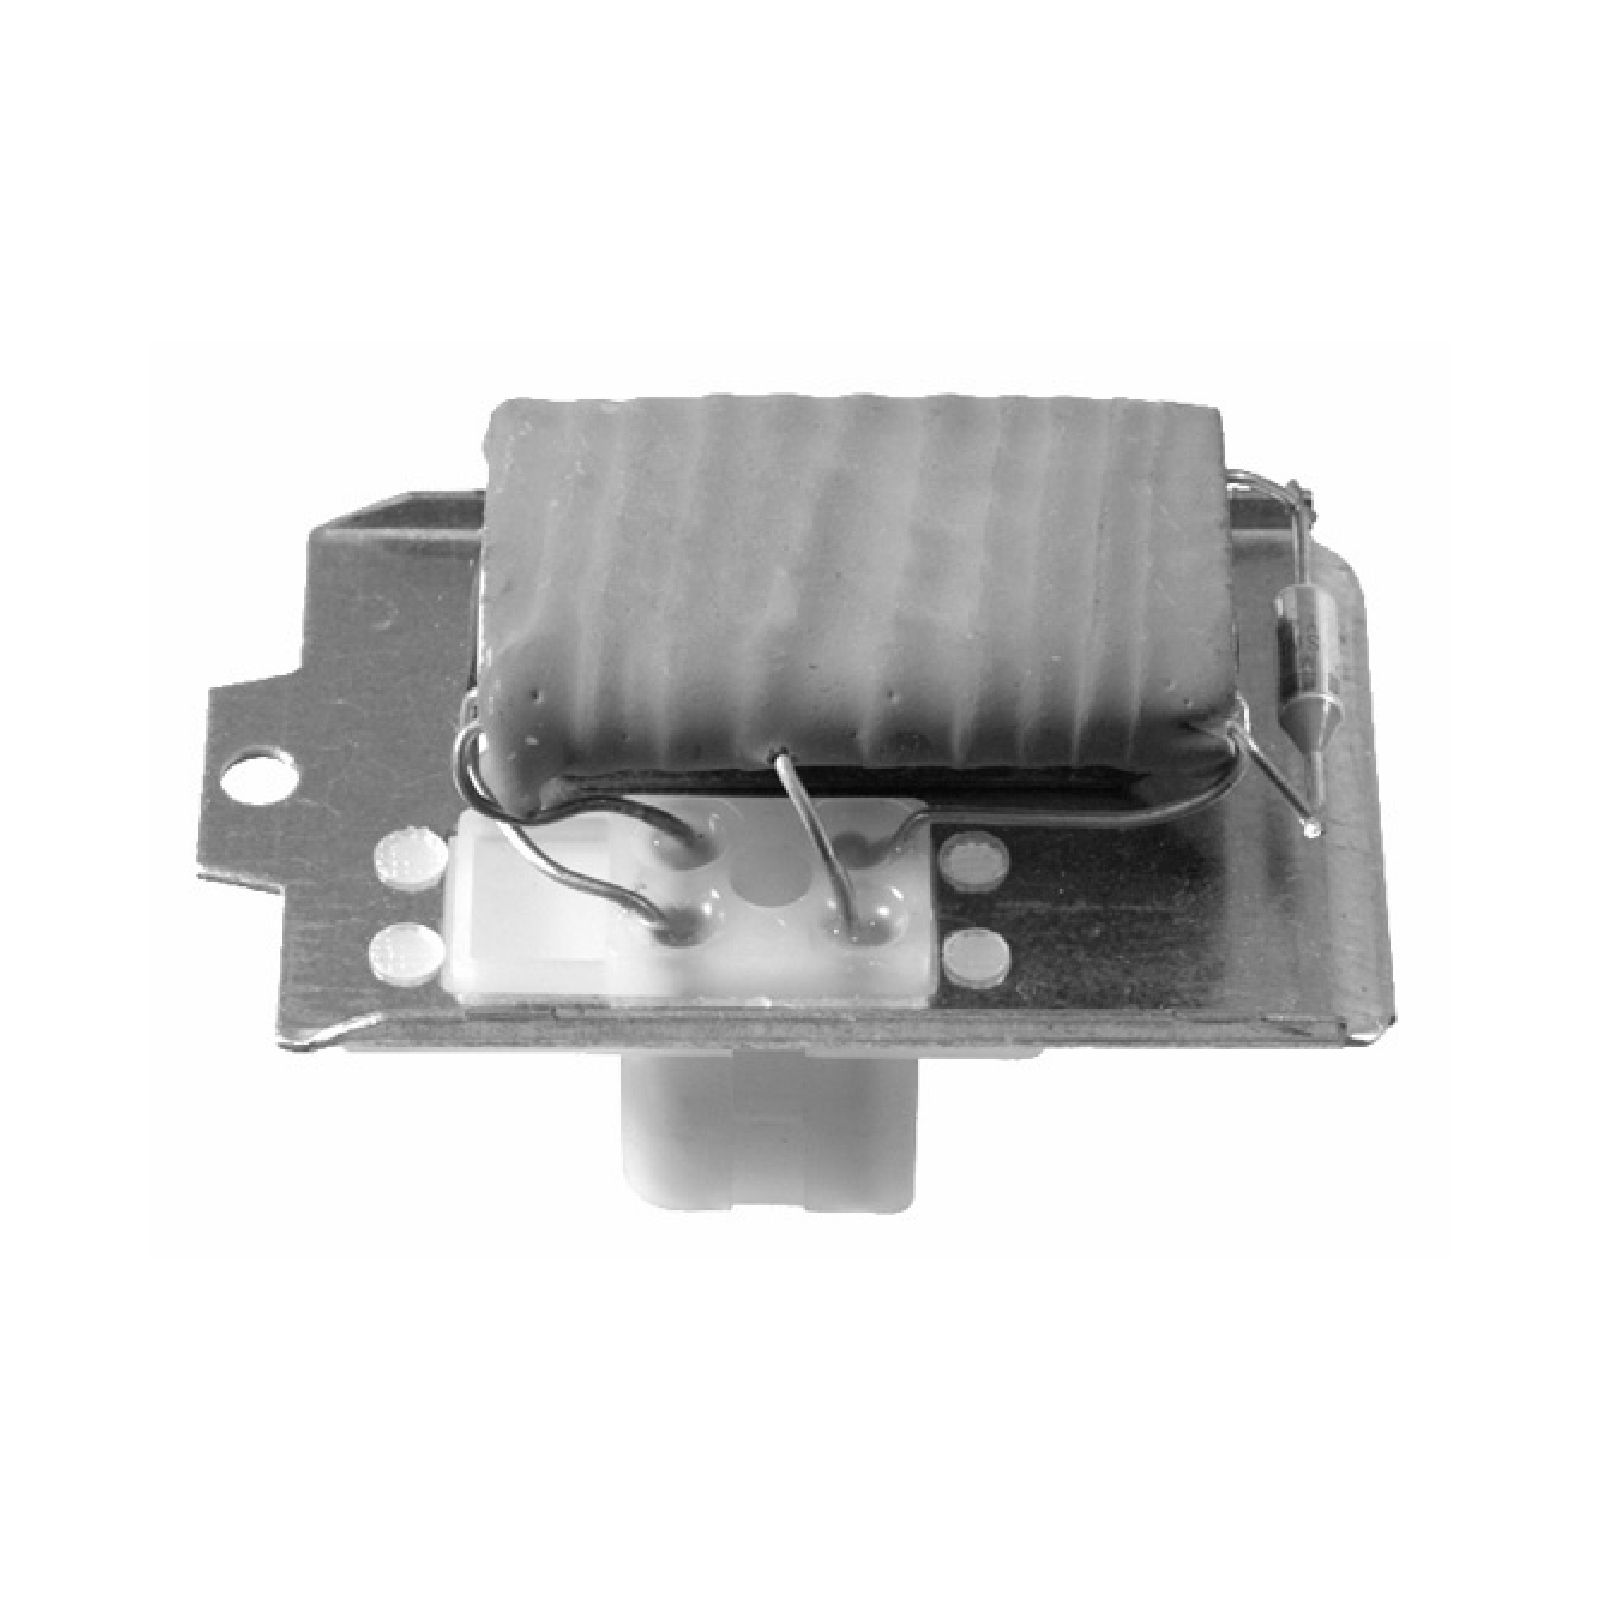 Blower Motor Resistor Replacement Cost Uk 28 Images